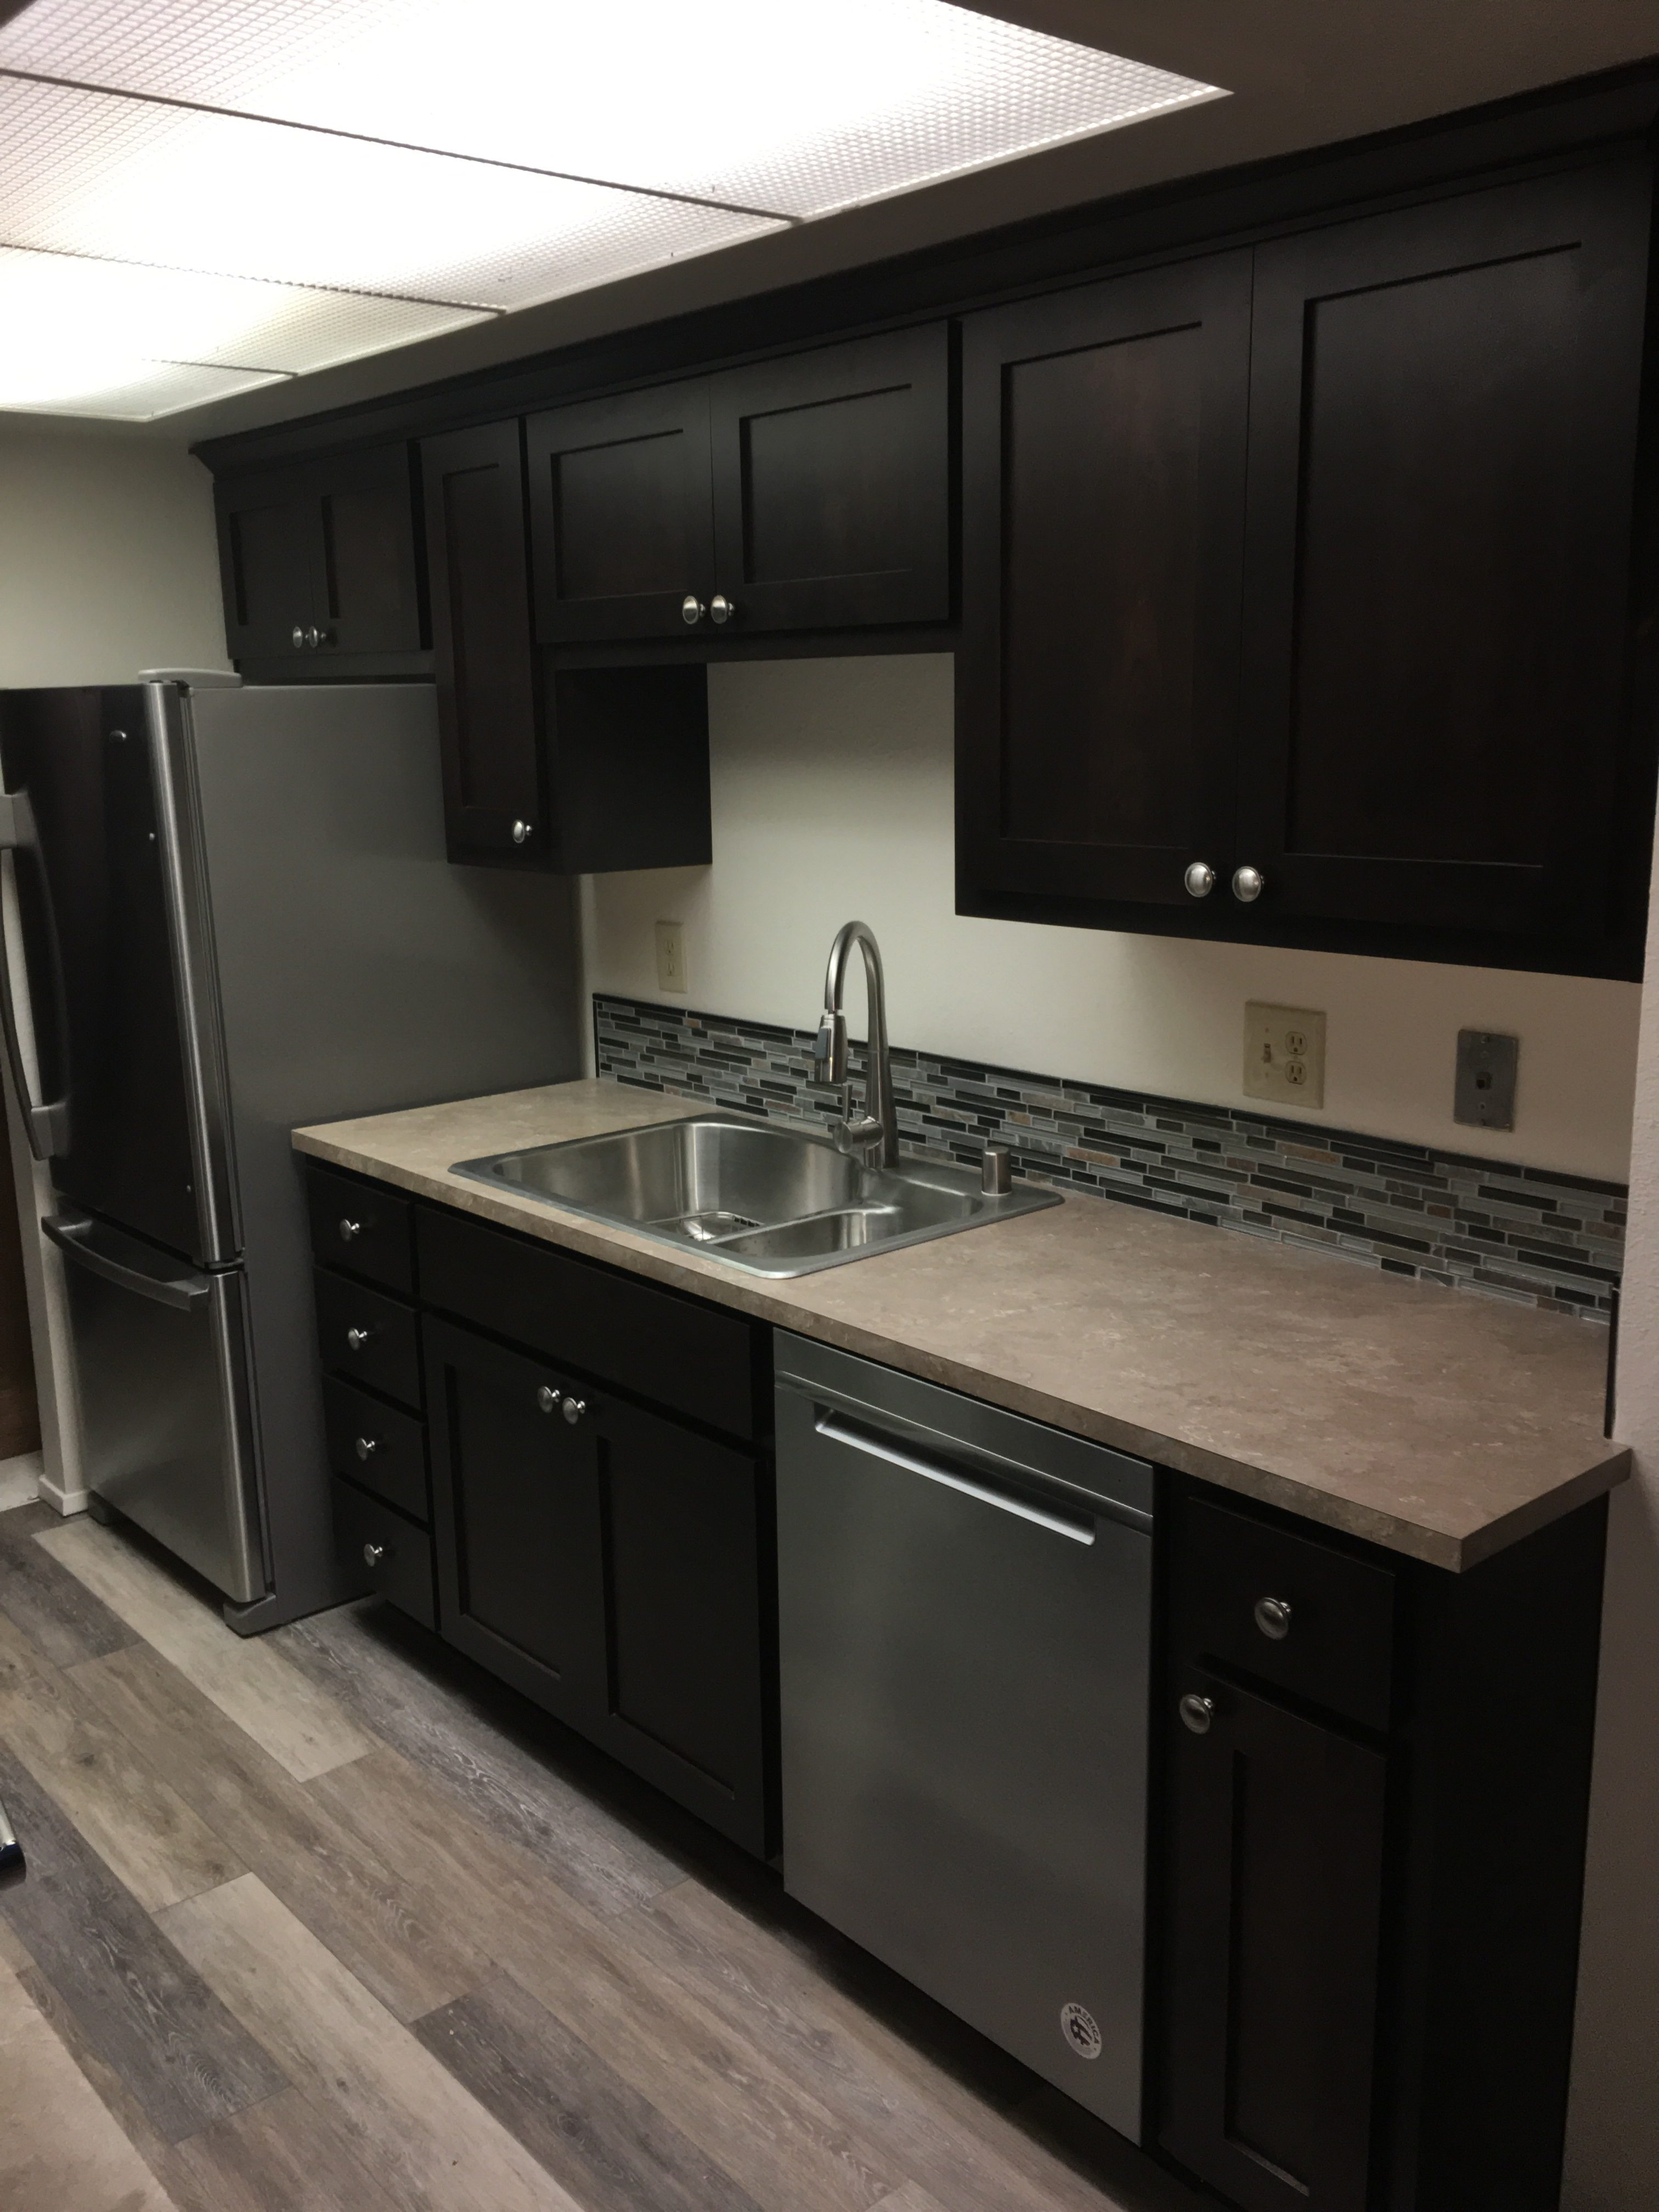 The Footprint And Design Of The Kitchen Didnu0027t Change, But We Were Able To  Squeeze A Little More Room Into The Kitchen Due To The Way Custom Cabinets  Are ...